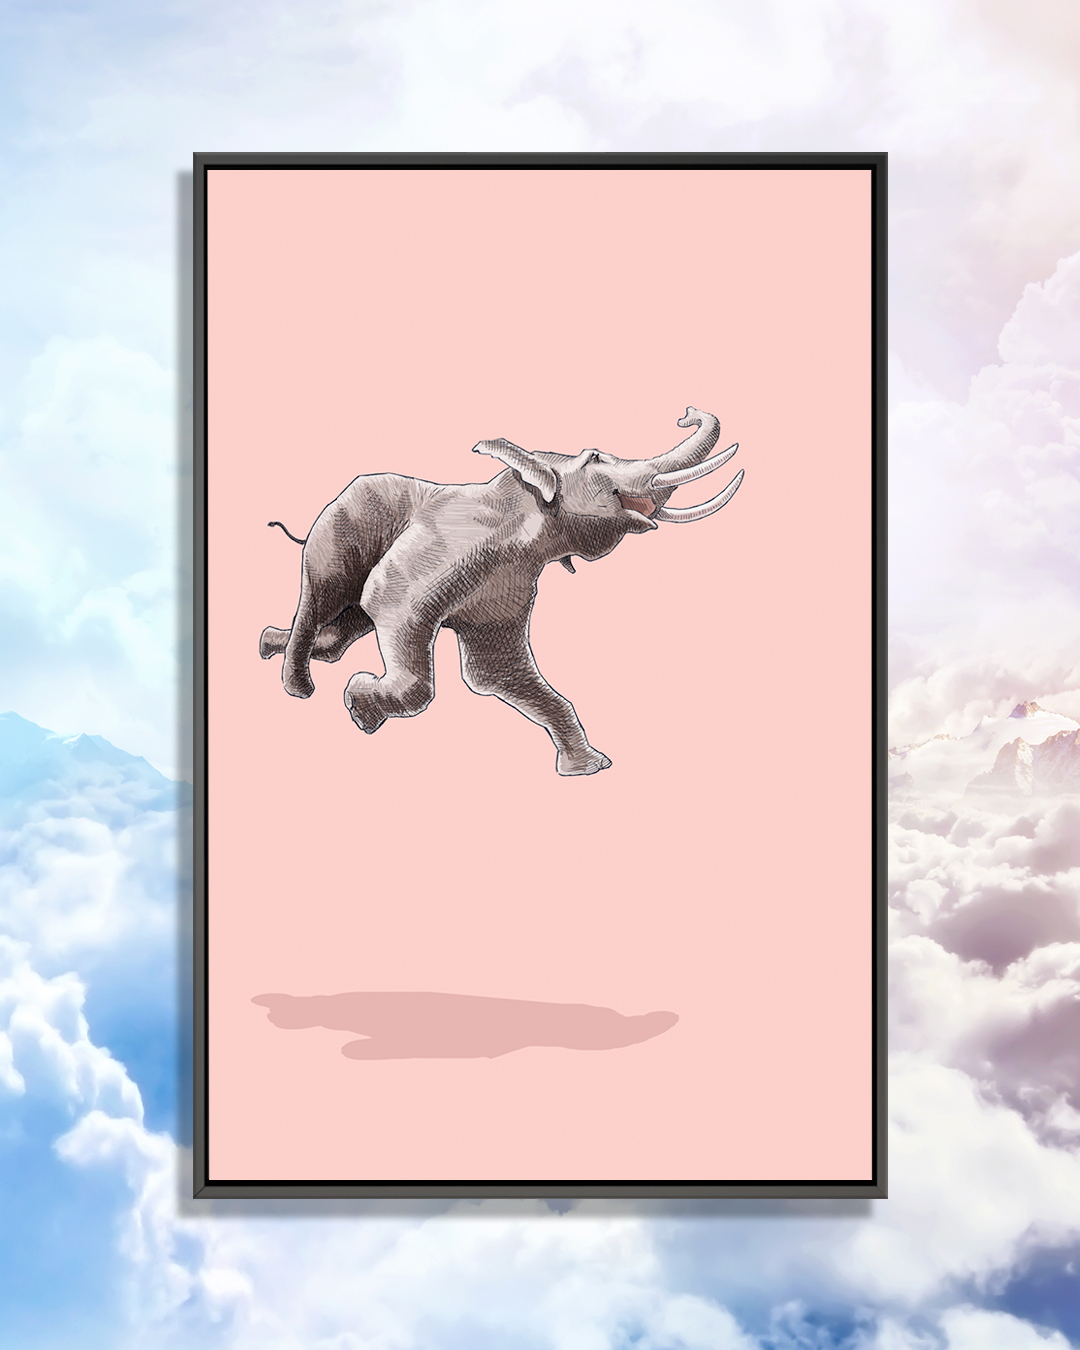 a joyous elephant leaping through the air on a pink background